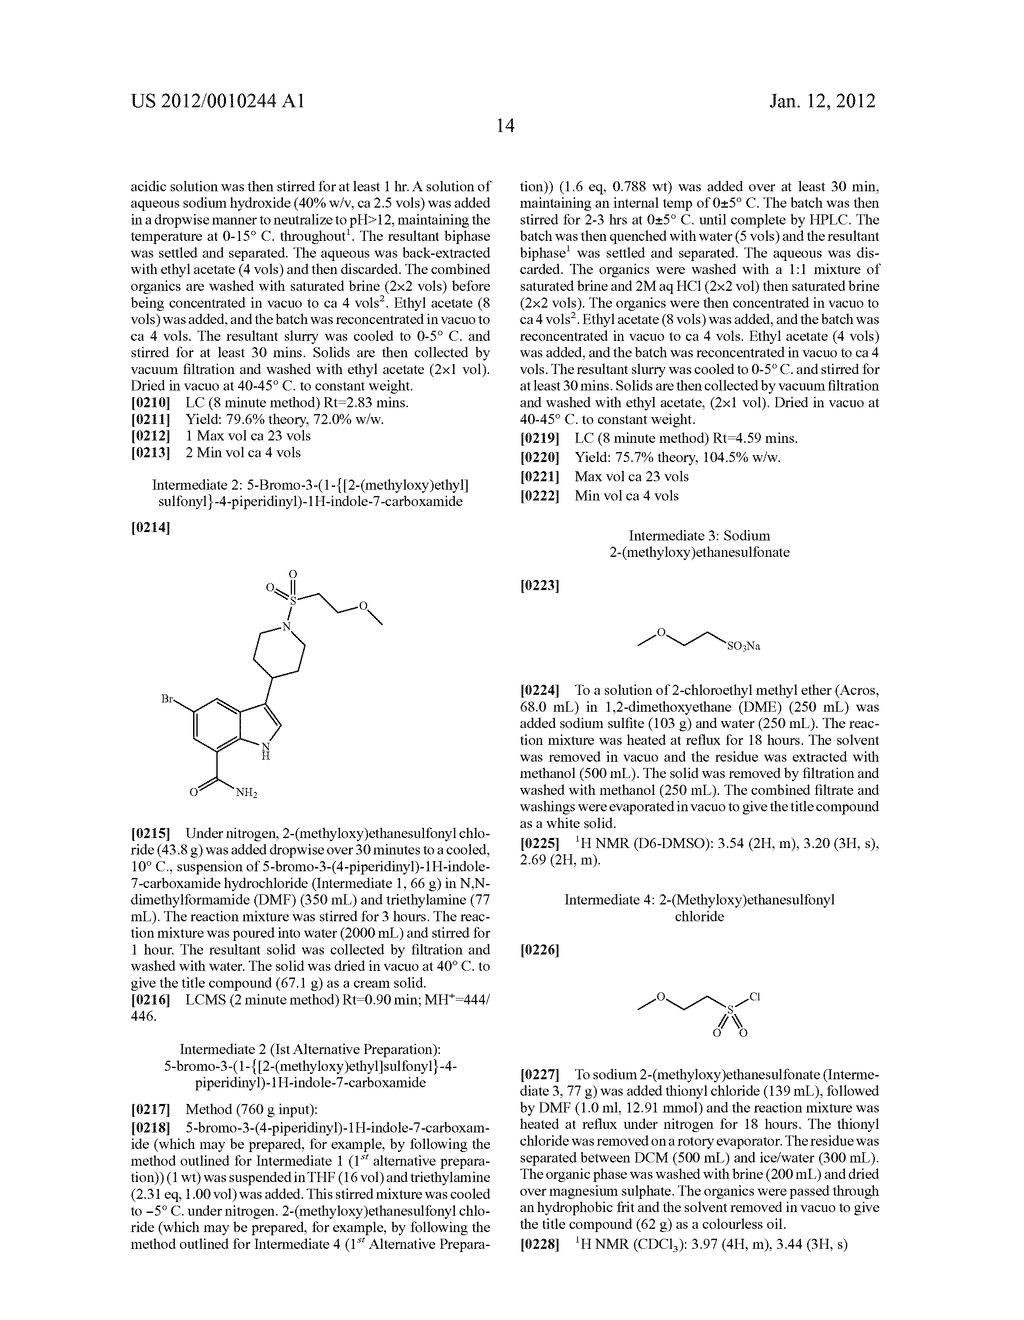 INDOLE DERIVATIVES AS IKK2 INHIBITORS - diagram, schematic, and image 18